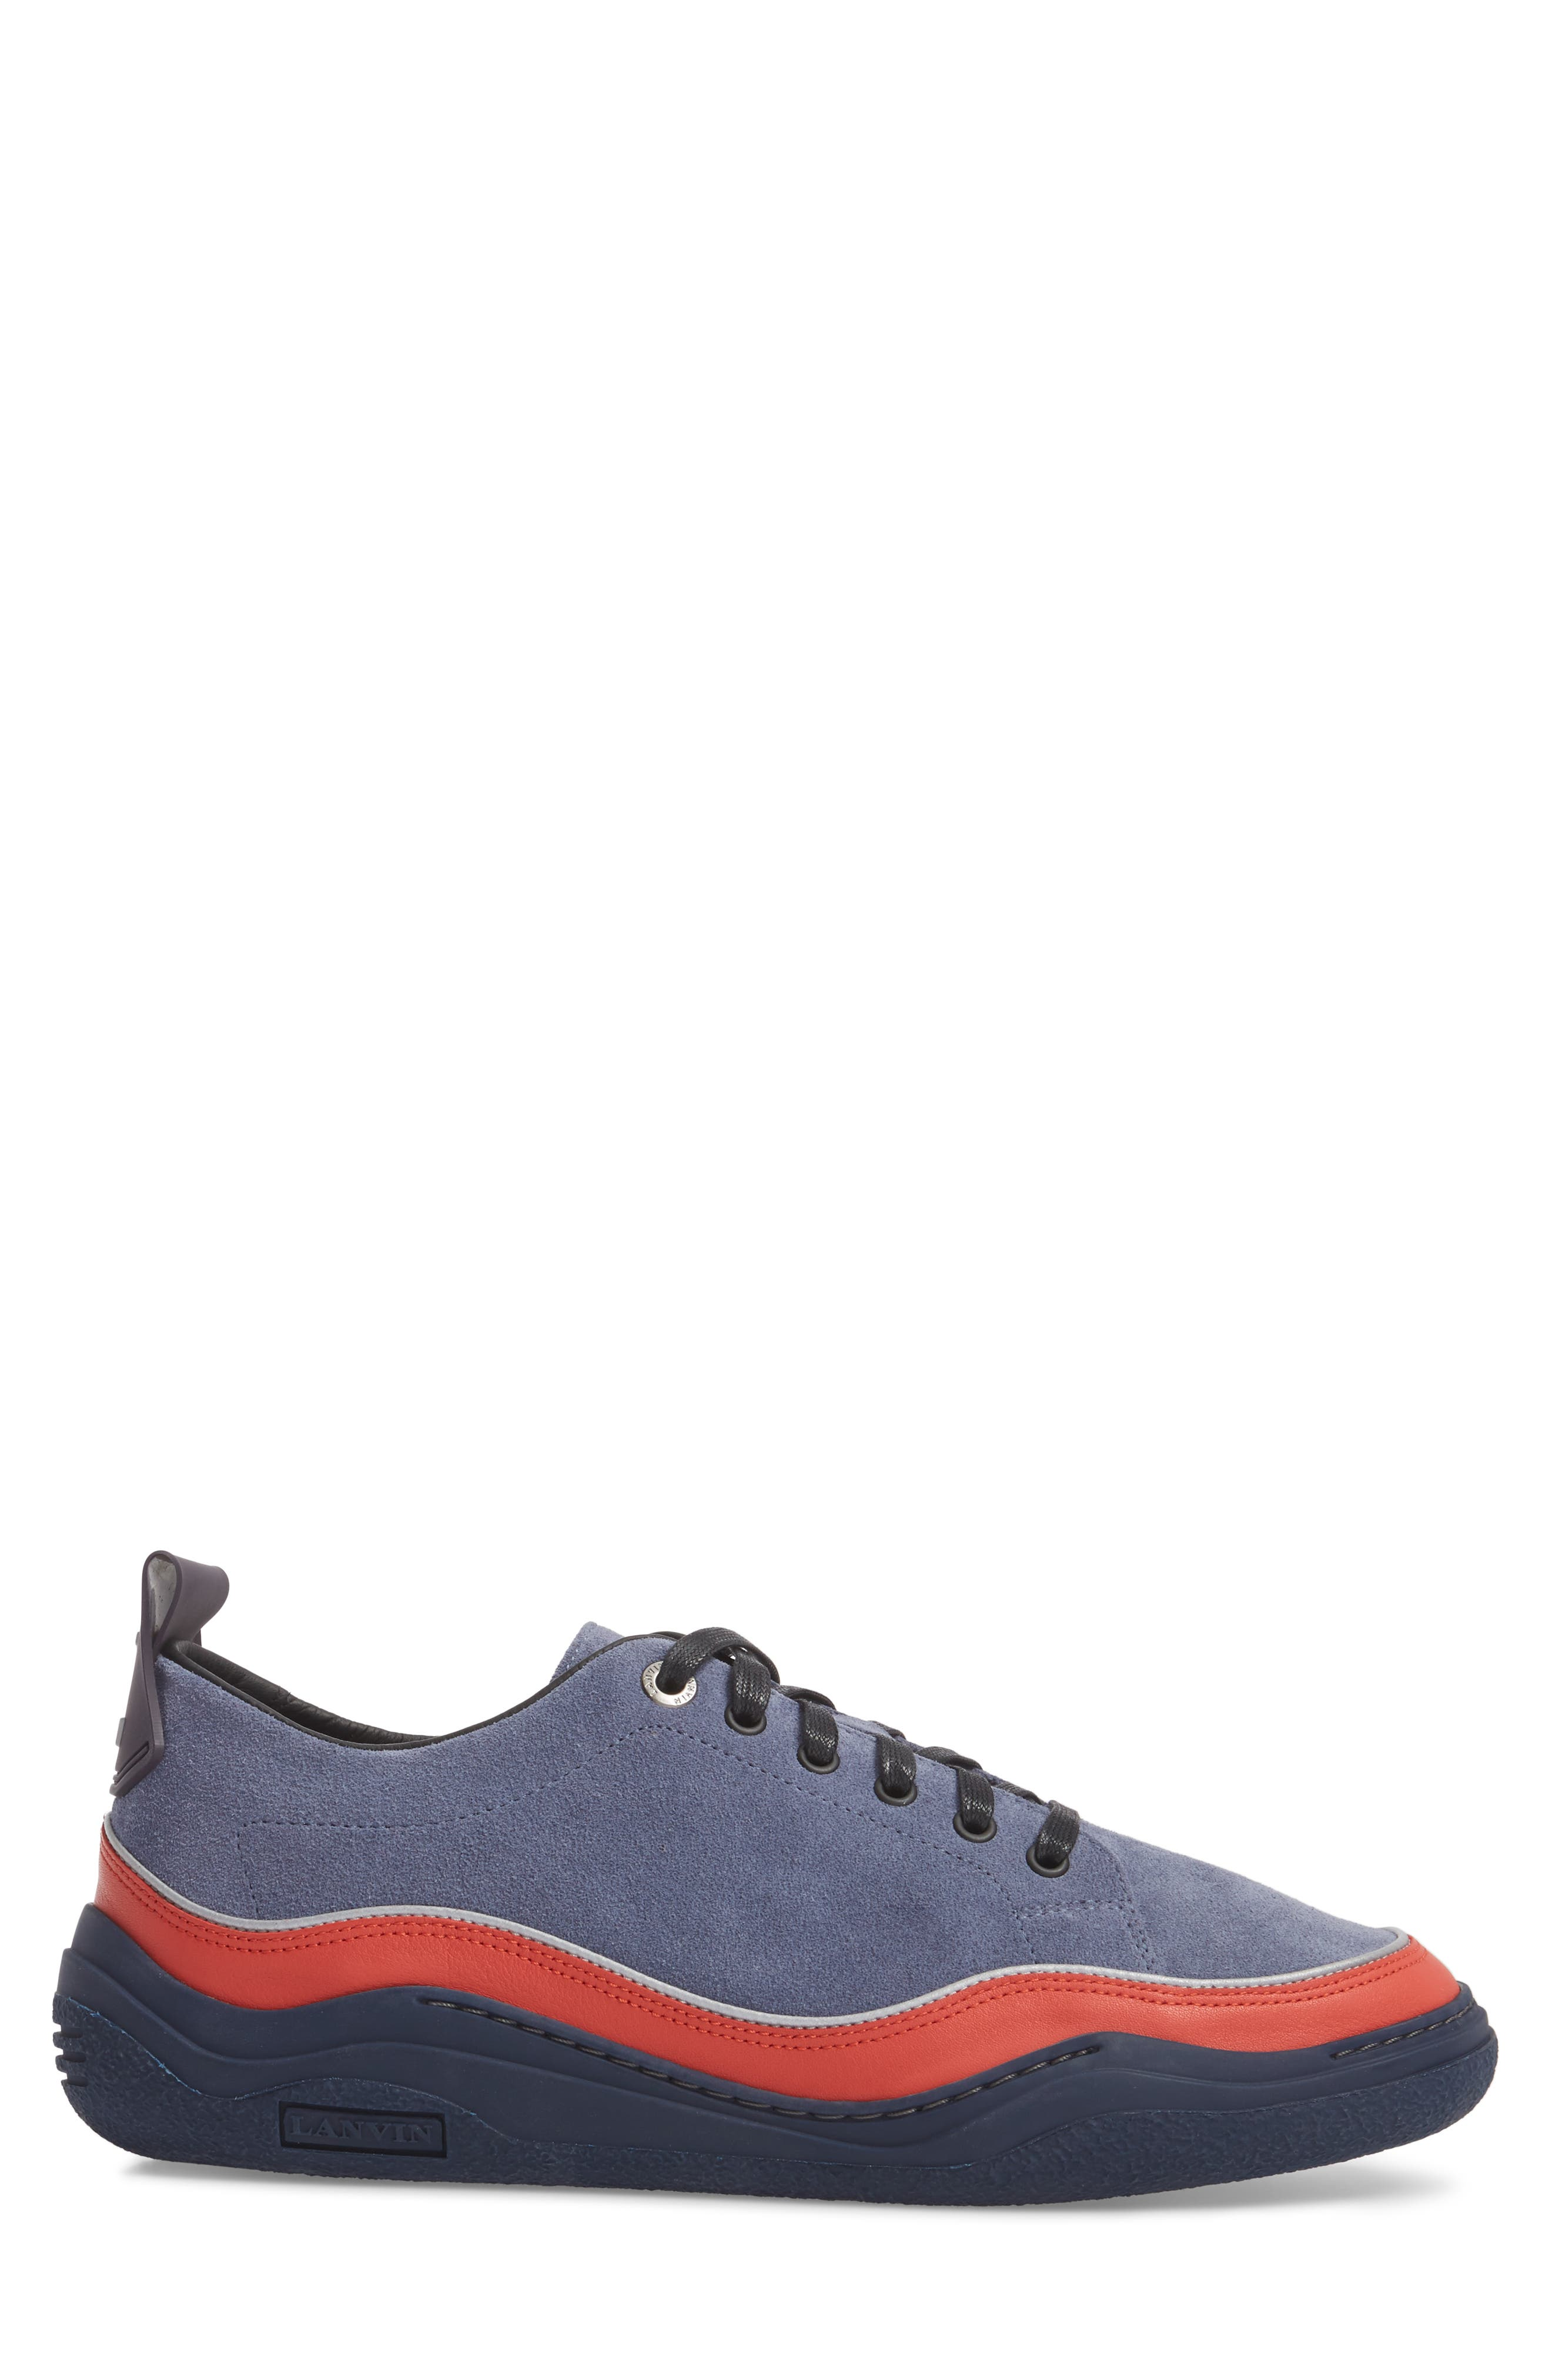 LANVIN,                             Diving Sneaker,                             Alternate thumbnail 3, color,                             450